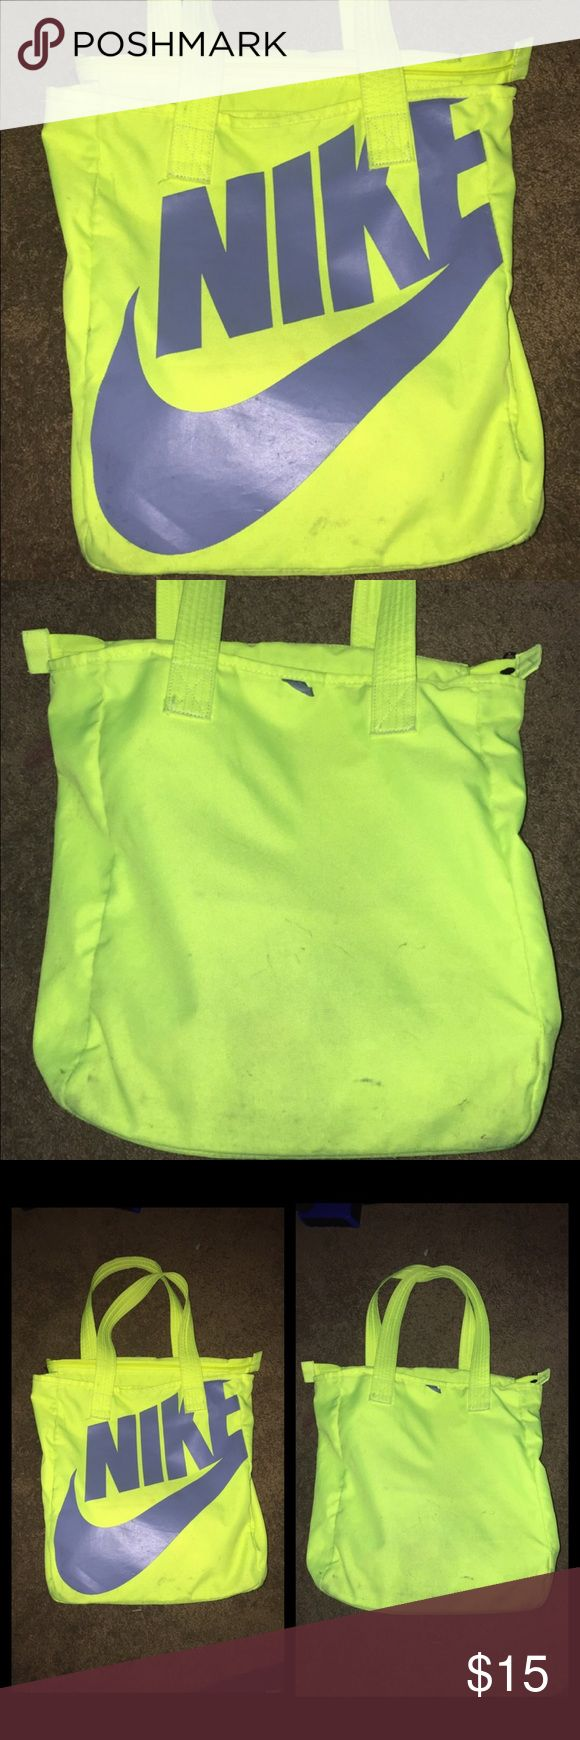 Nike tote bag Neon yellow Nike tote. In good condition, few stains but may come clean if washed! Nike Bags Totes